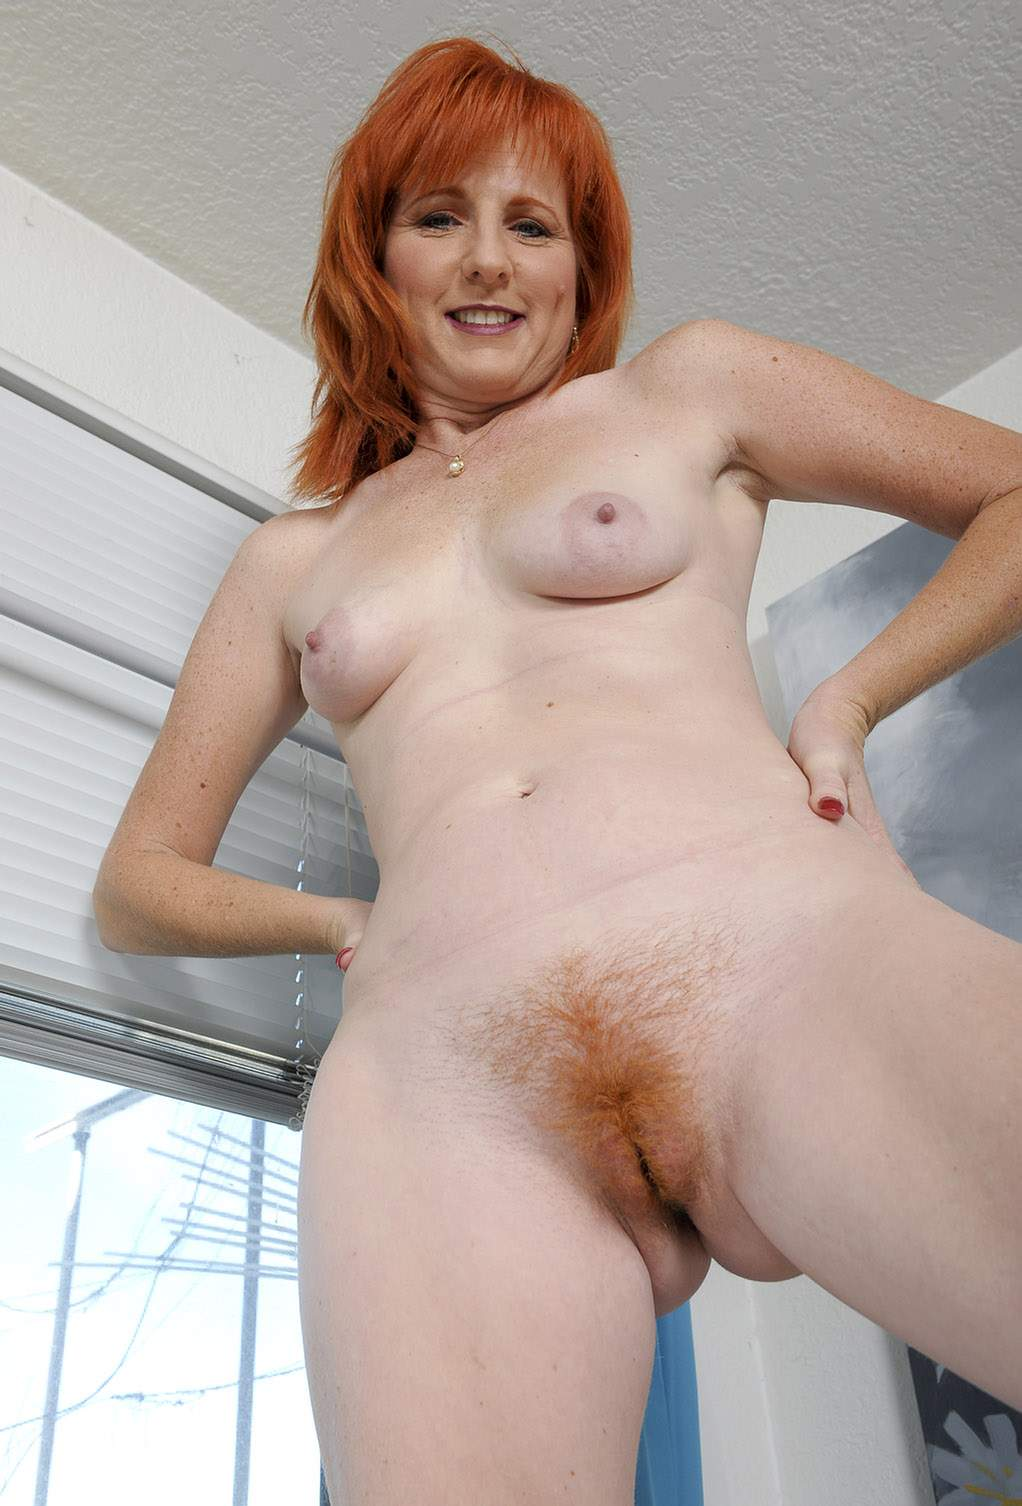 Camel toe shaved pussys